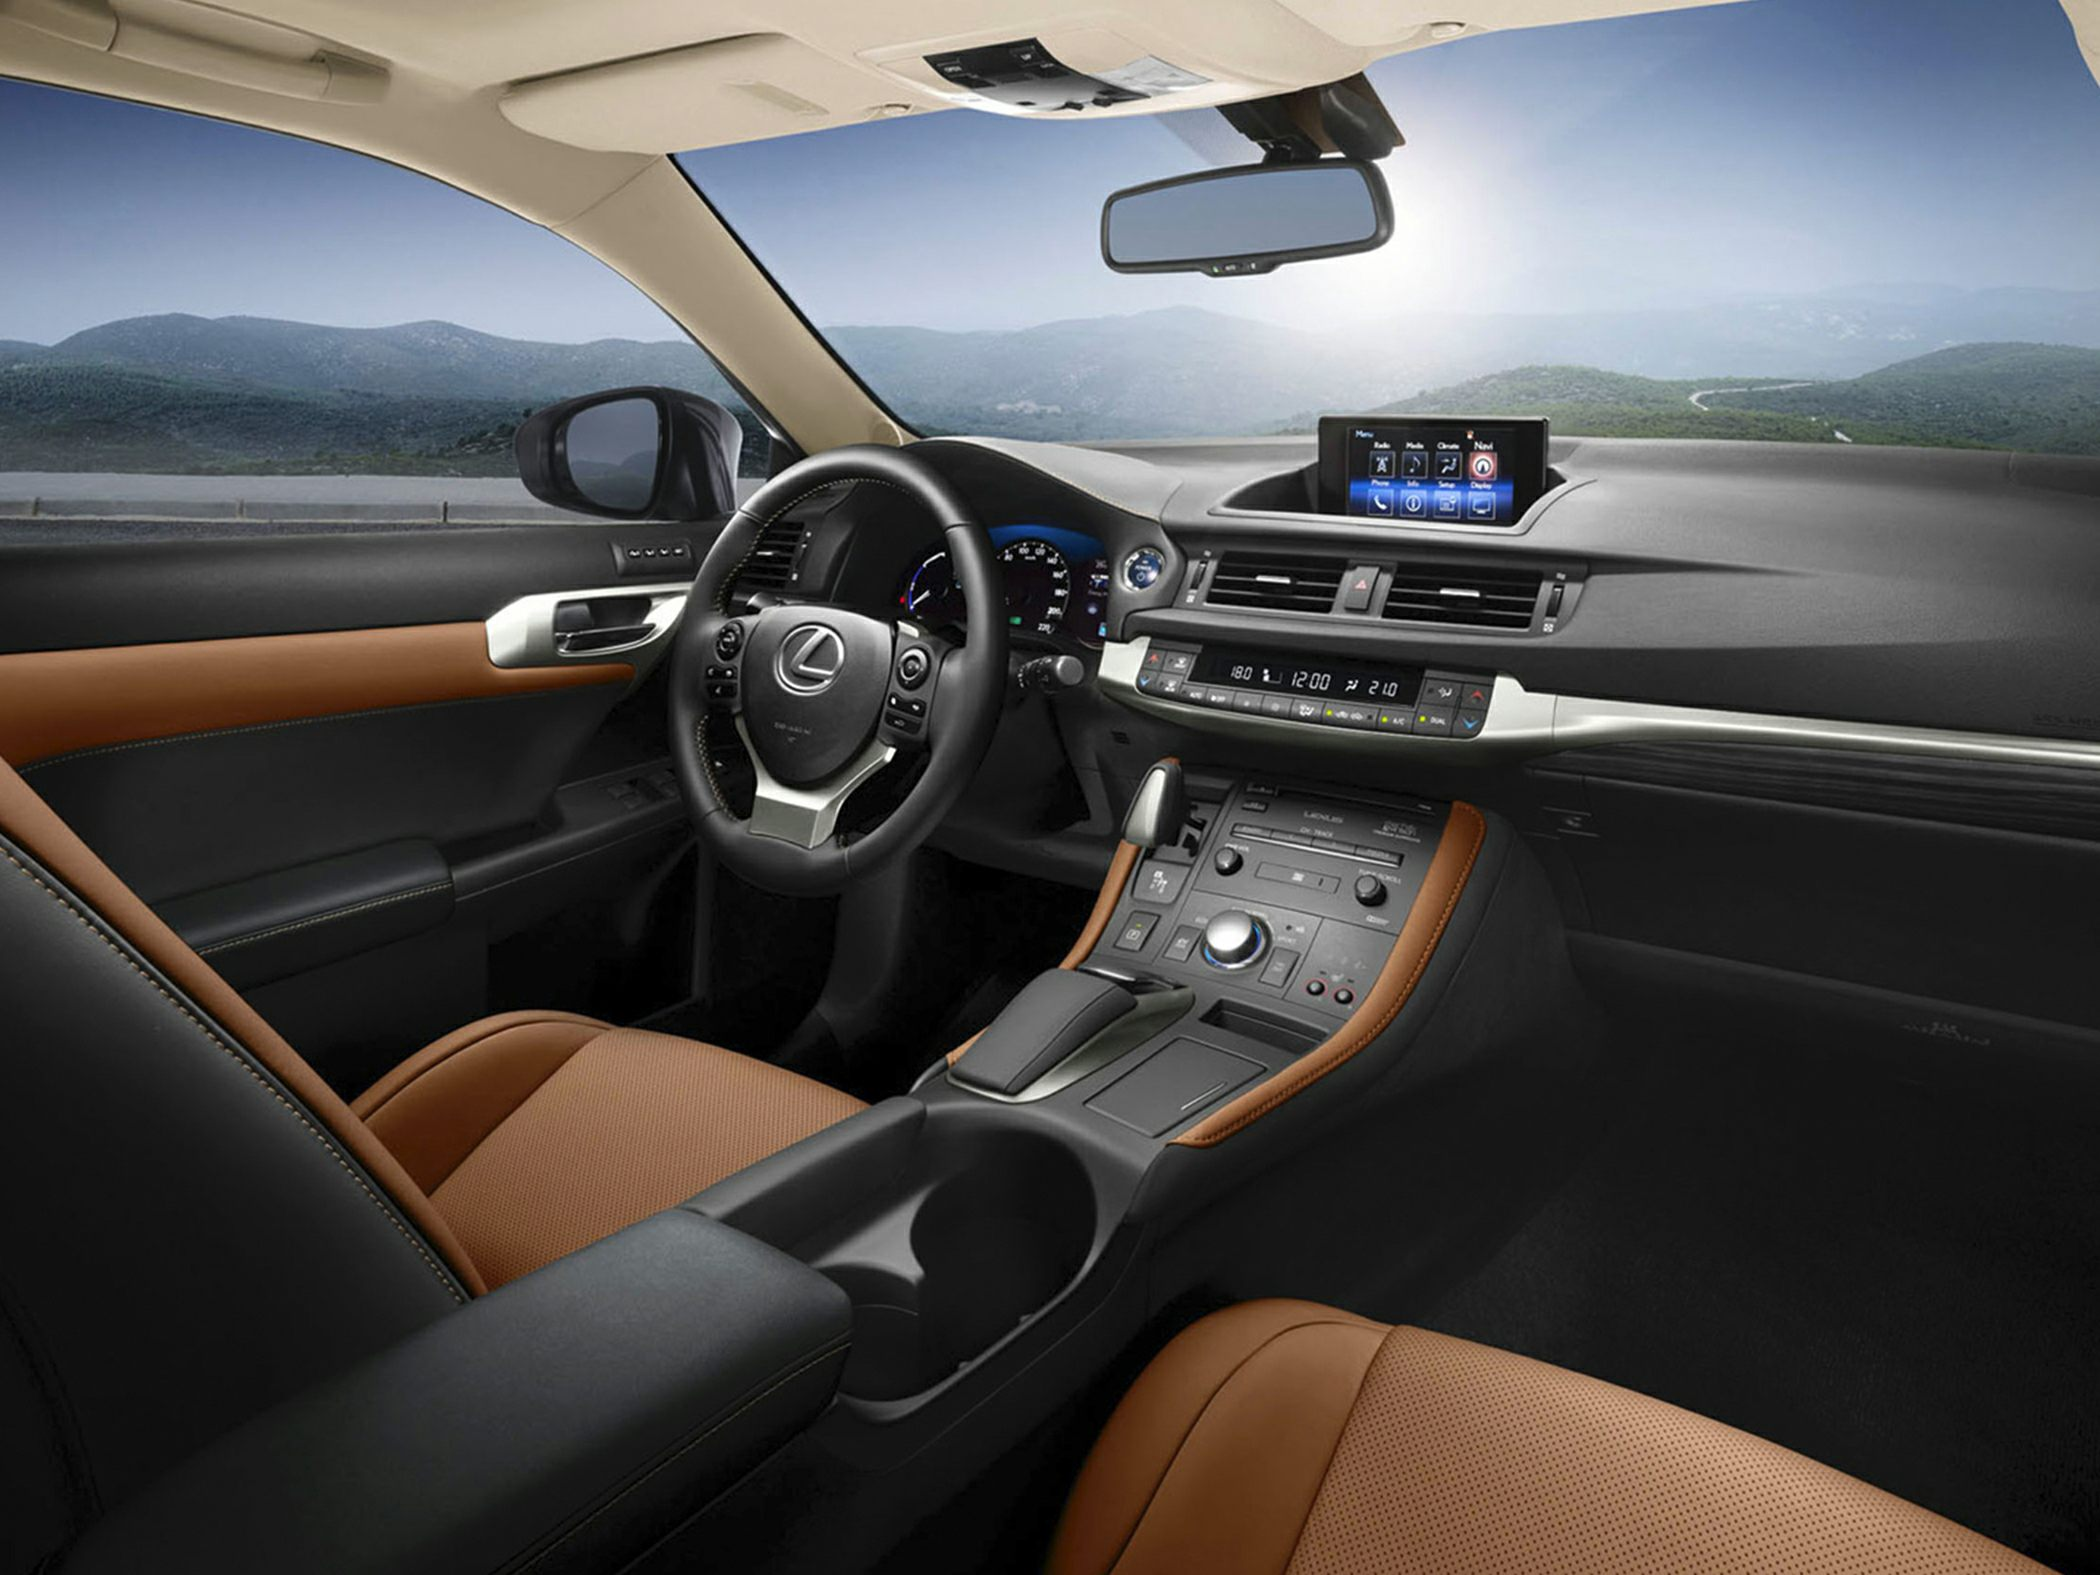 2014 Lexus CT 200h Interior